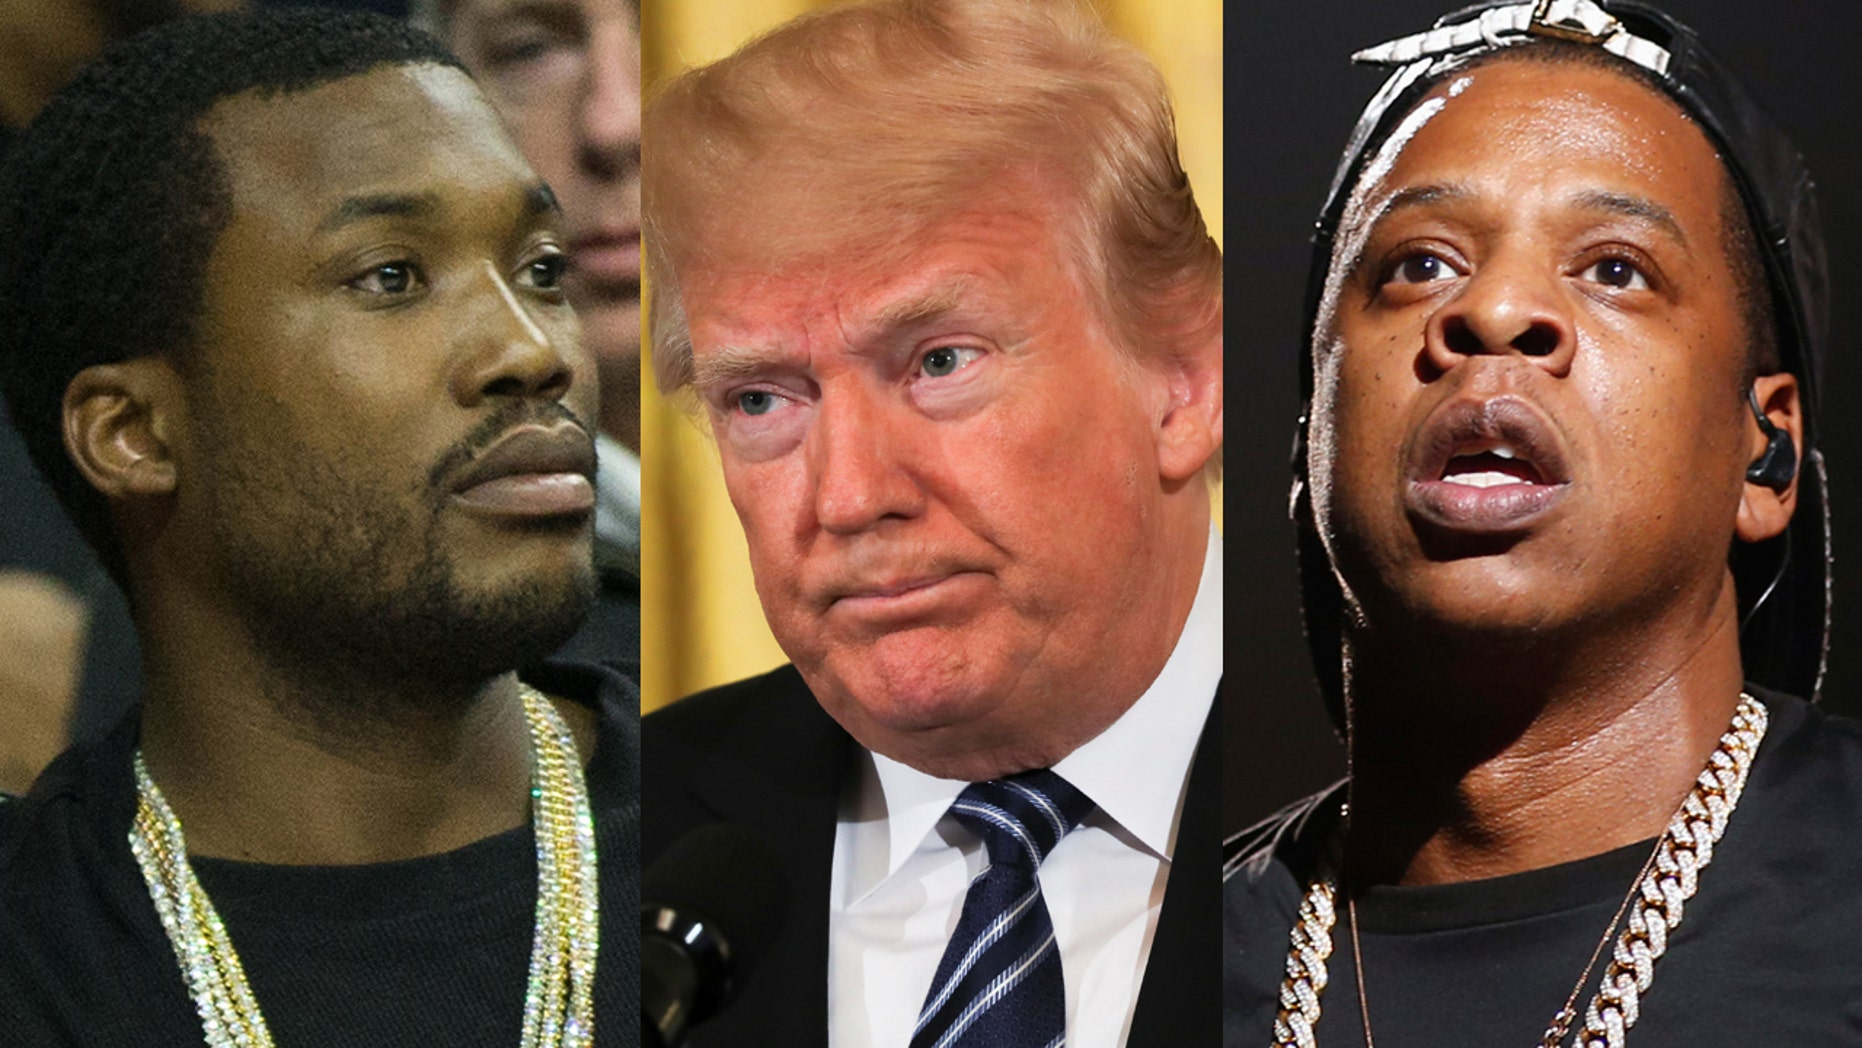 Jay Z reportedly called his friend and rapper Meek Mill and told him not to attend President Trump's Prison Reform Summit in fear that it would damage his ego.